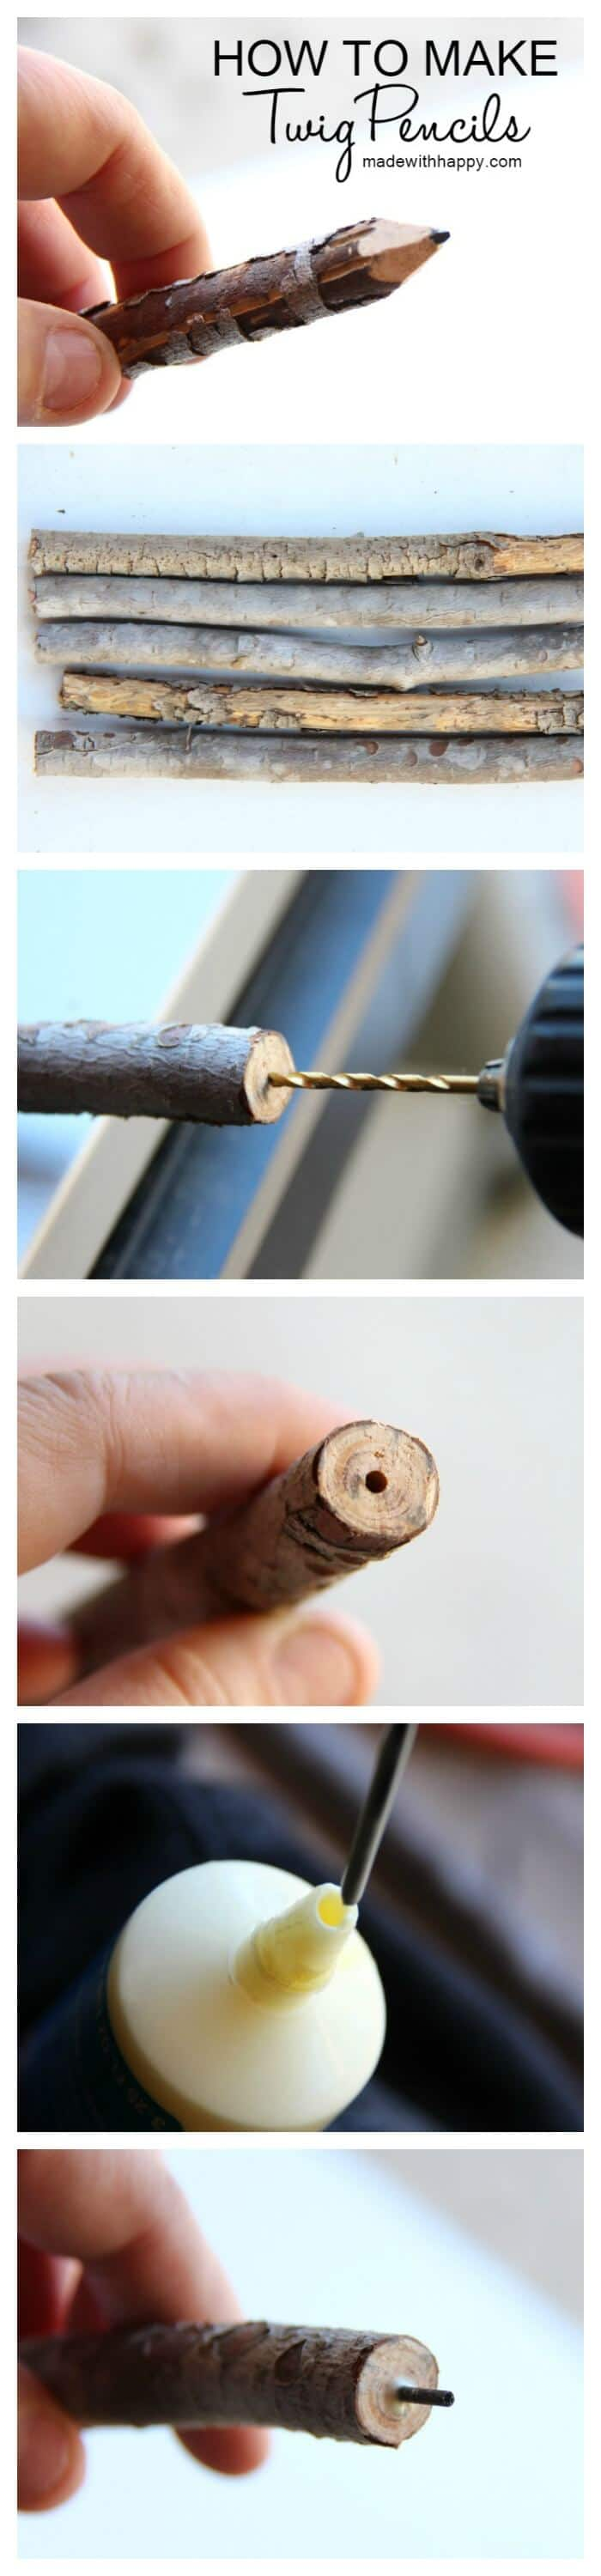 How to make twig pencils | Making pencils out of branches and twigs | DIY Pencils | www.madewithhAPPY.com